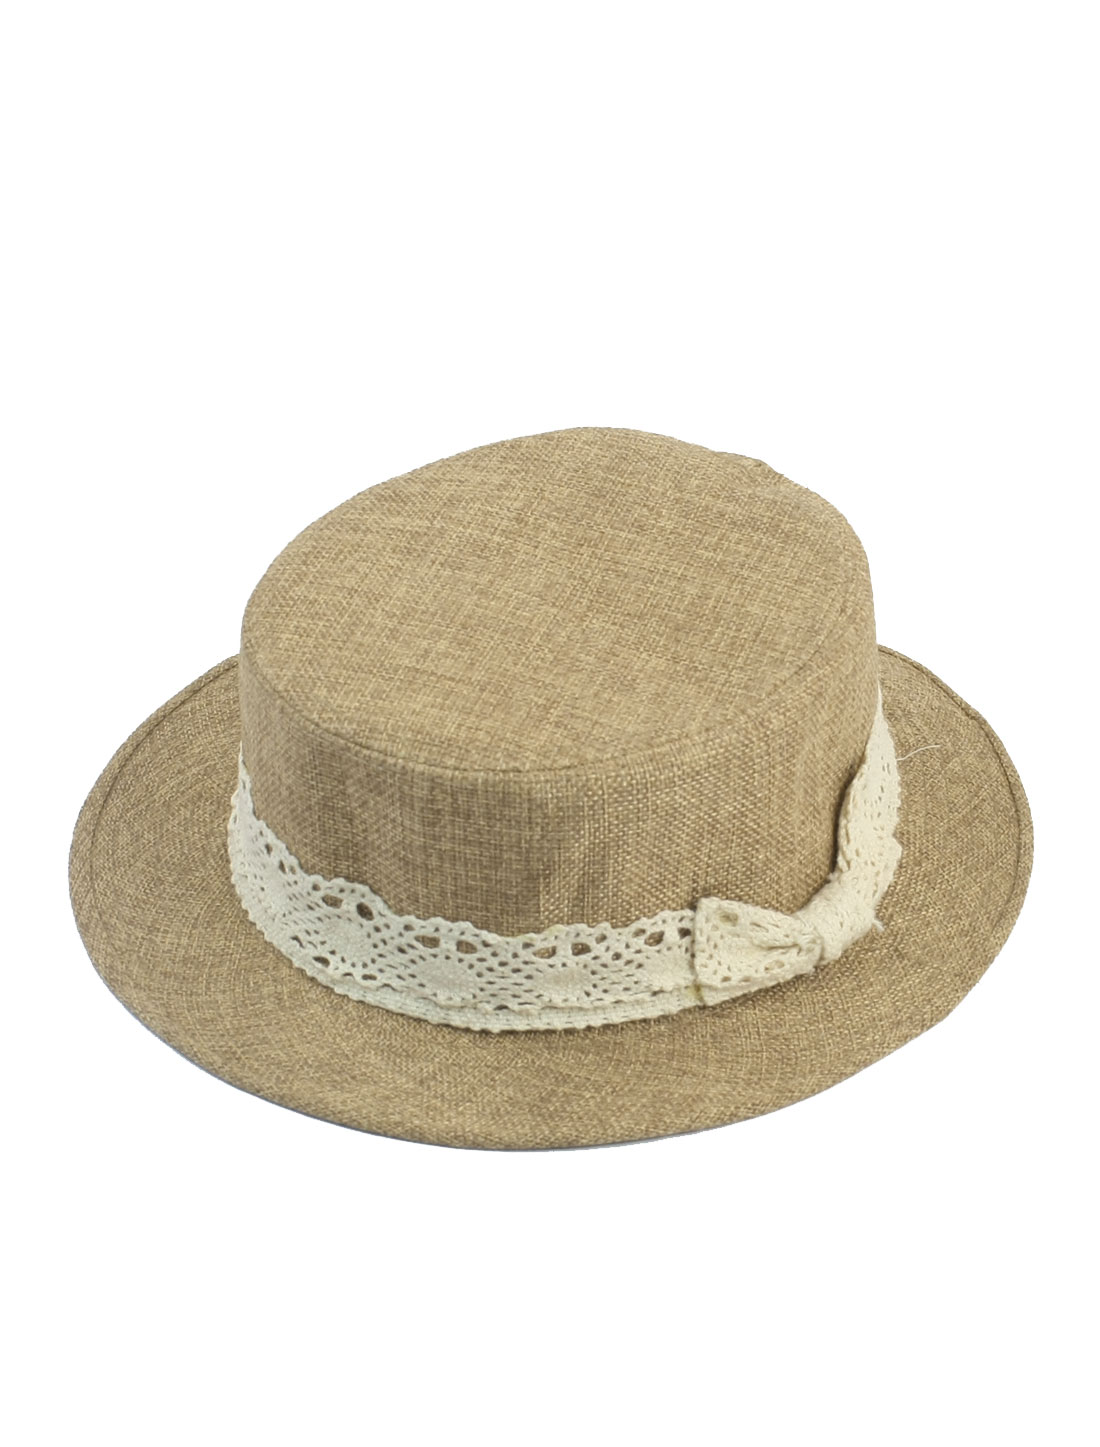 Woman Lace Bowknot Decoration Outdoors Beach Sun Hat Cap Khaki